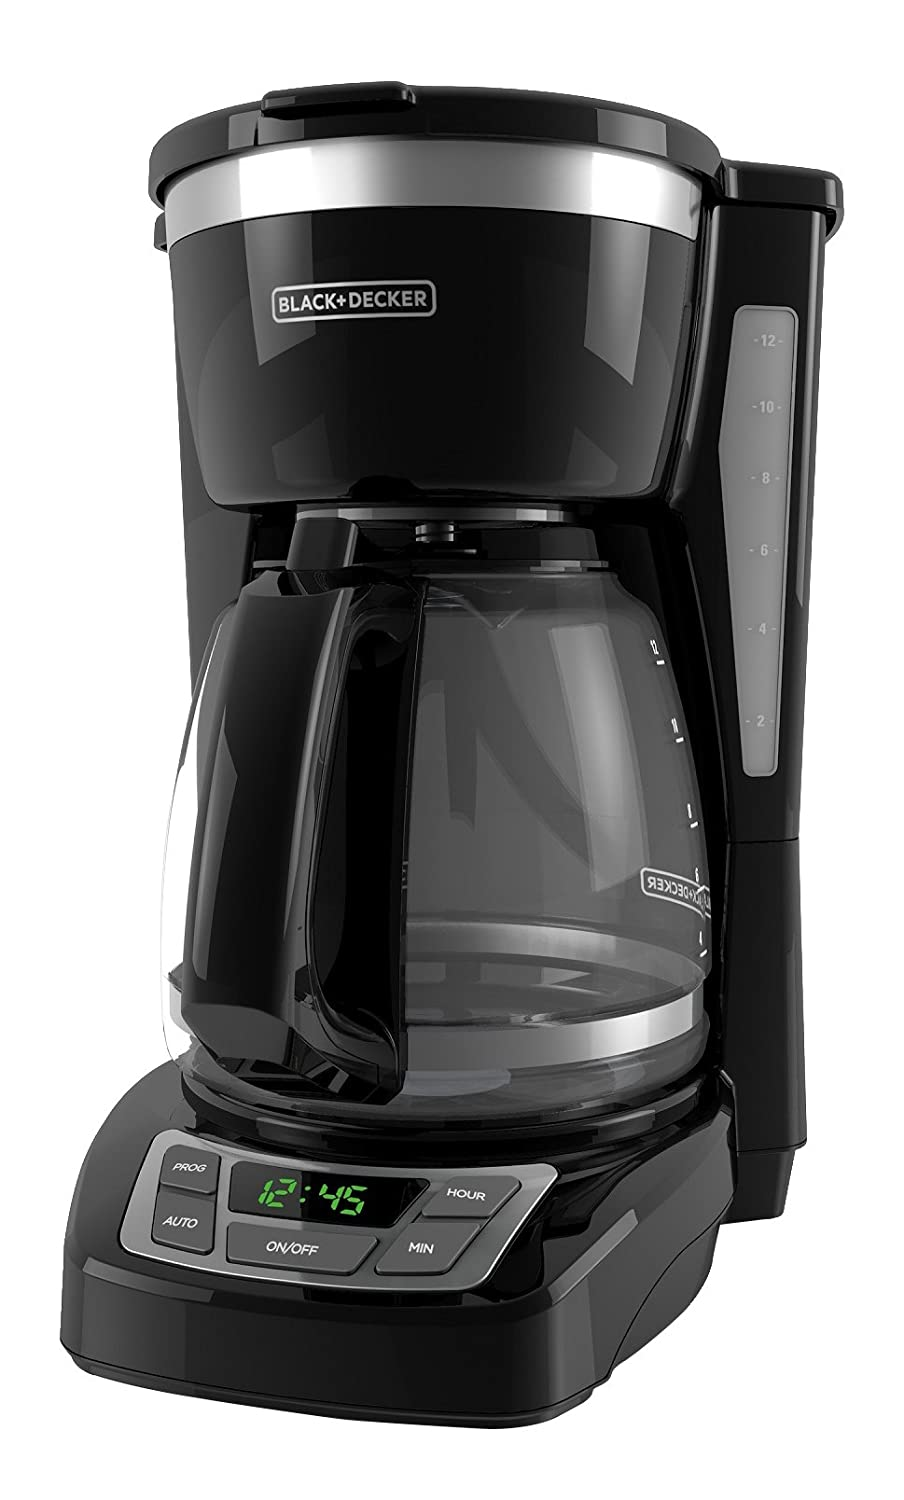 Black and decker 12 cup programmable - Amazon Com Black Decker Cm1160b 12 Cup Programmable Coffee Maker Digital Control Programmable Coffee Maker Black Stainless Steel Kitchen Dining